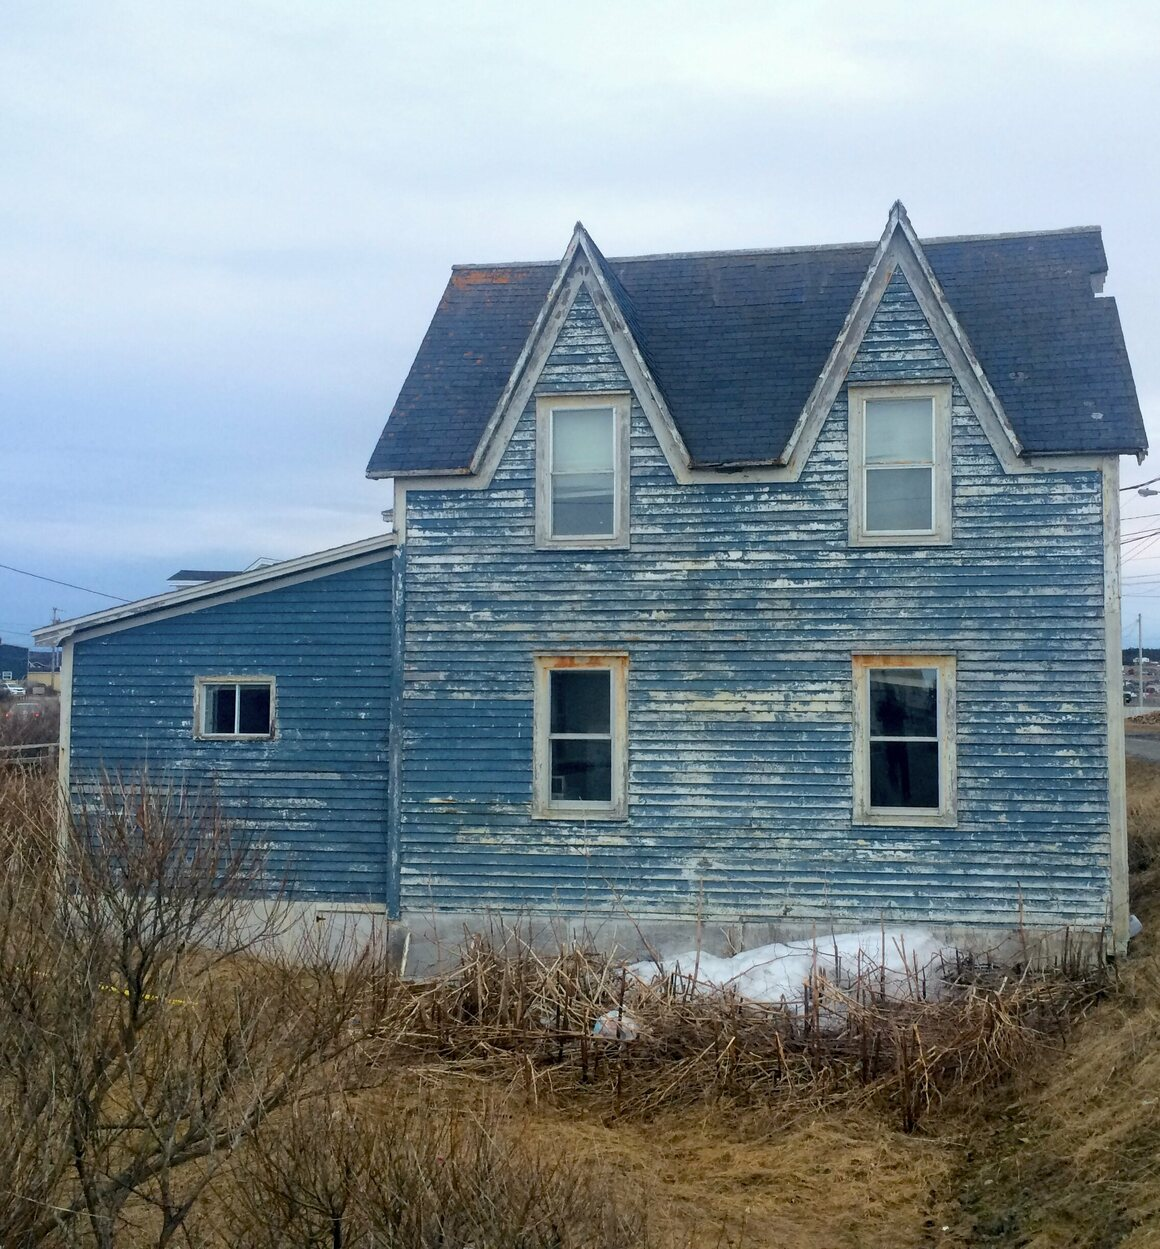 Abandoned family home, Bonavista Bay.